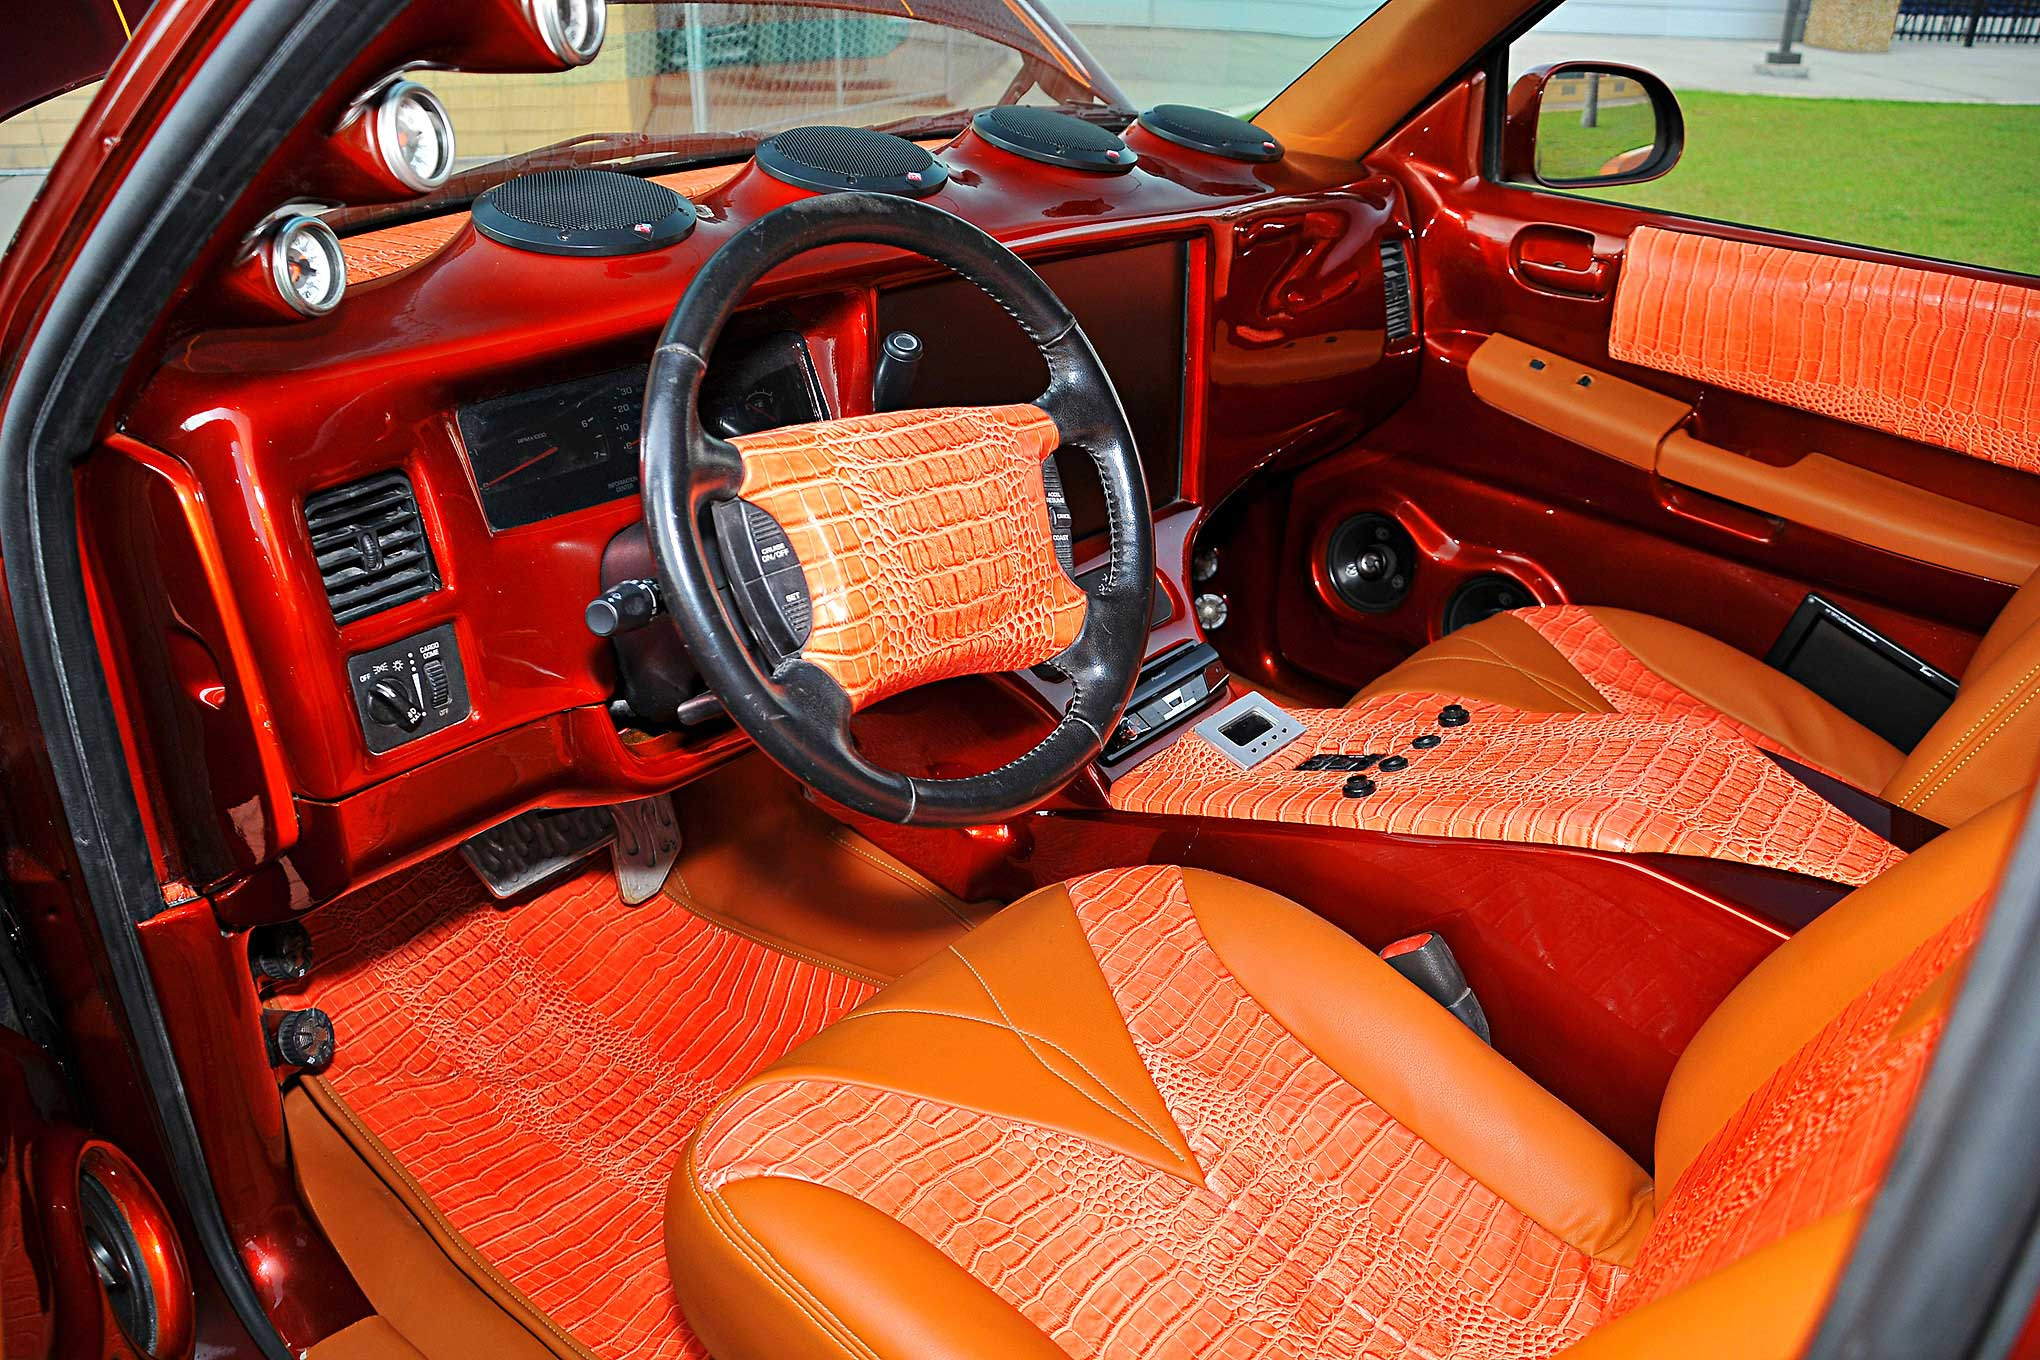 2002 dodge dakota orange gator skin tan vinyl interior lowrider. Black Bedroom Furniture Sets. Home Design Ideas